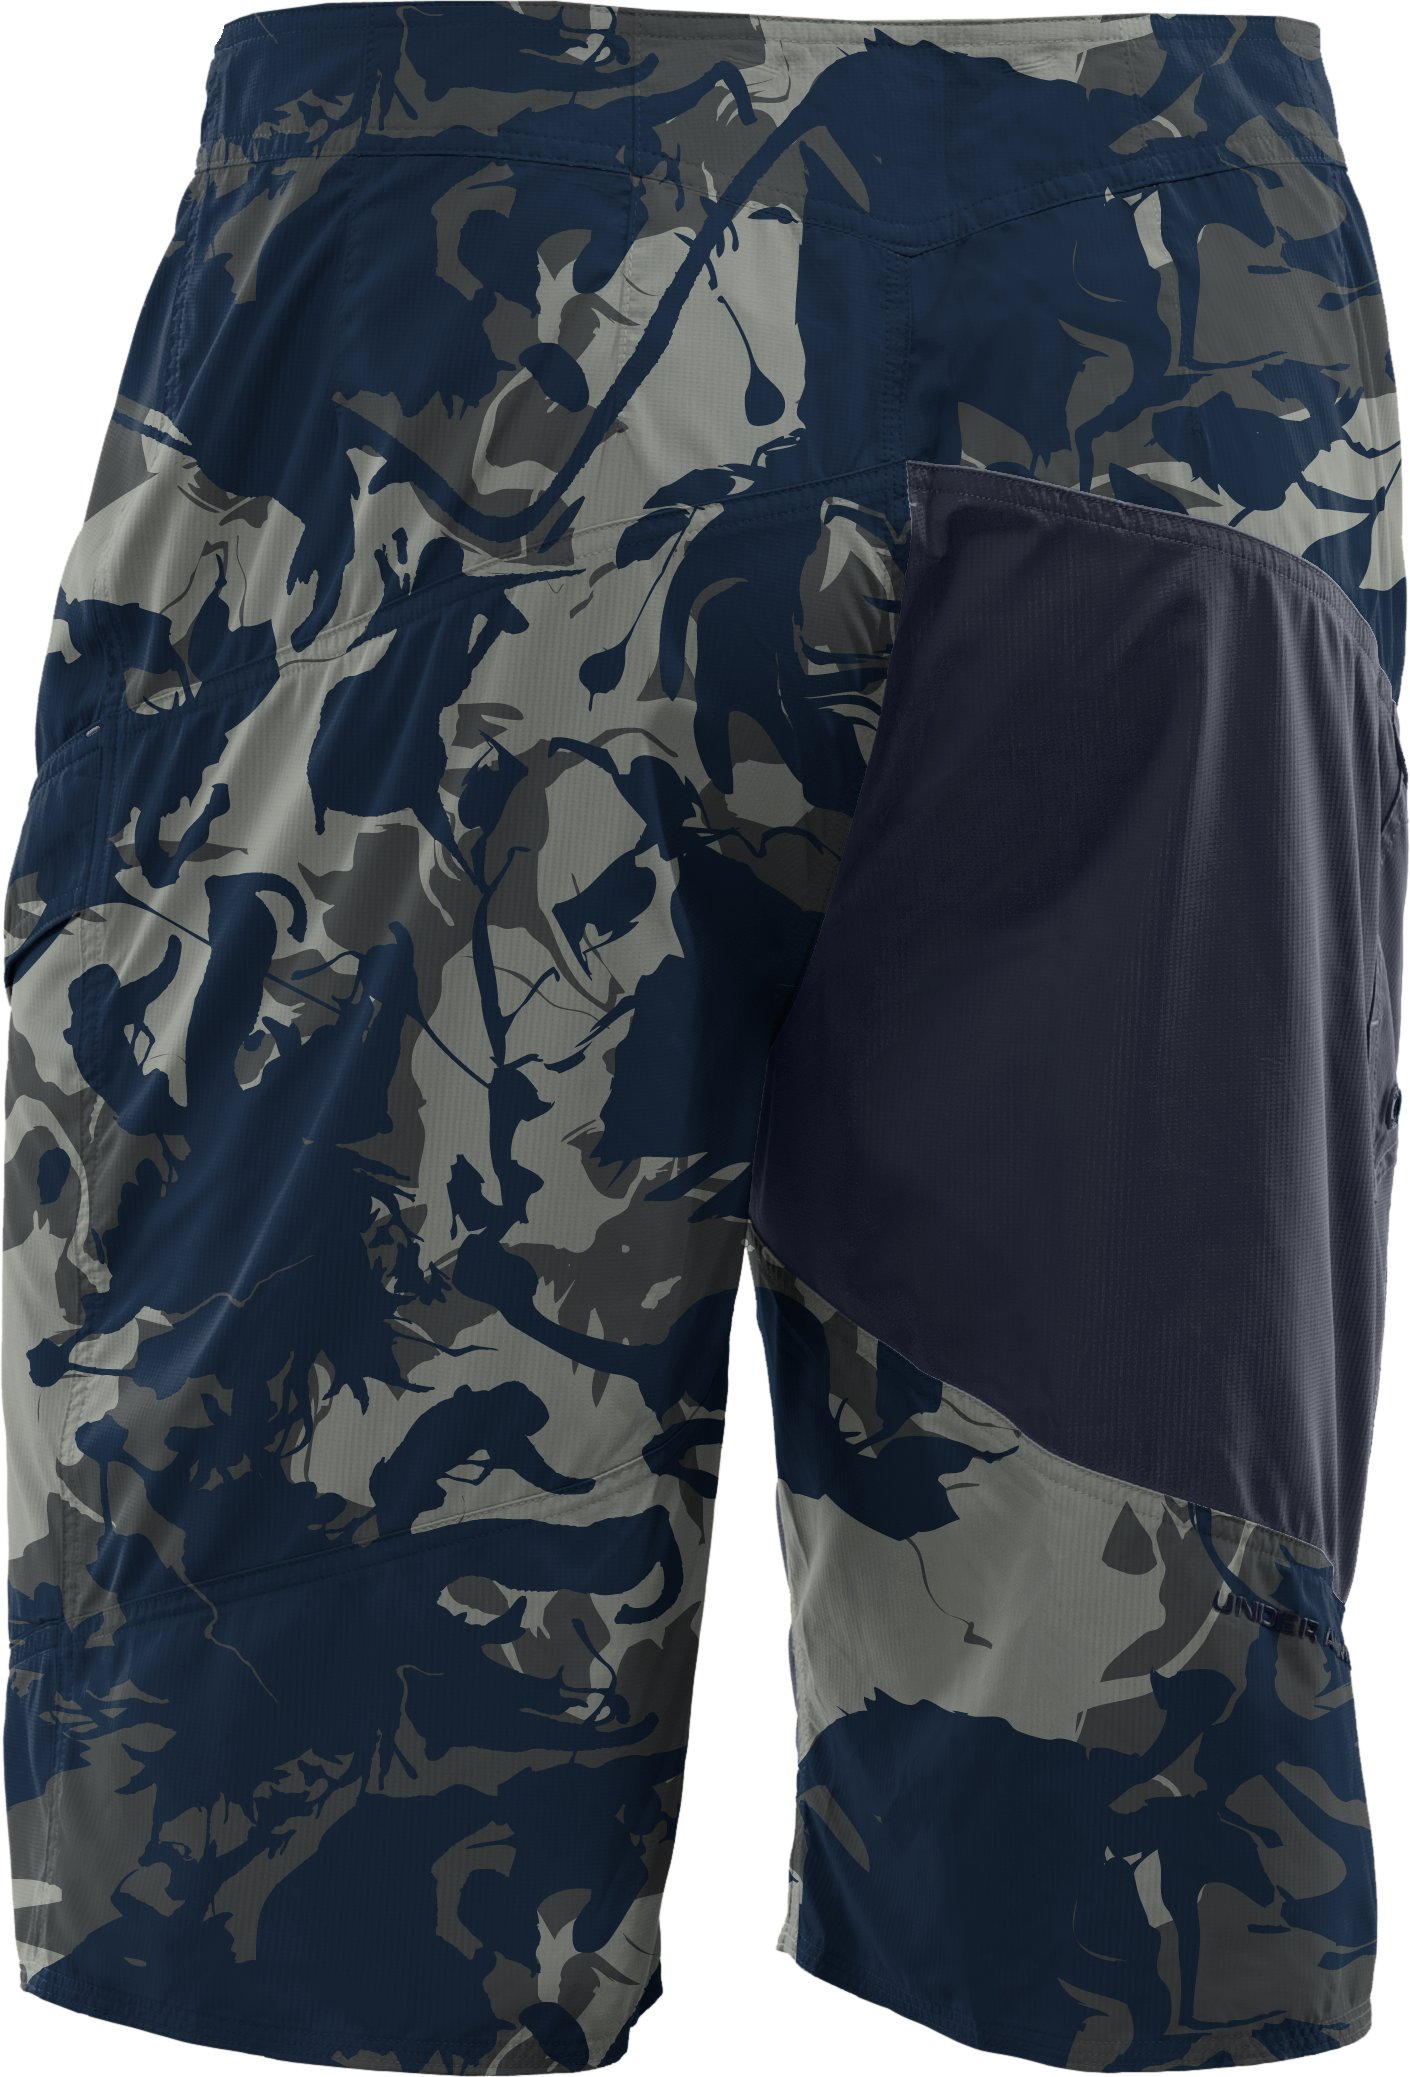 "Men's UA Harborwater 11"" Board Shorts, Battleship"